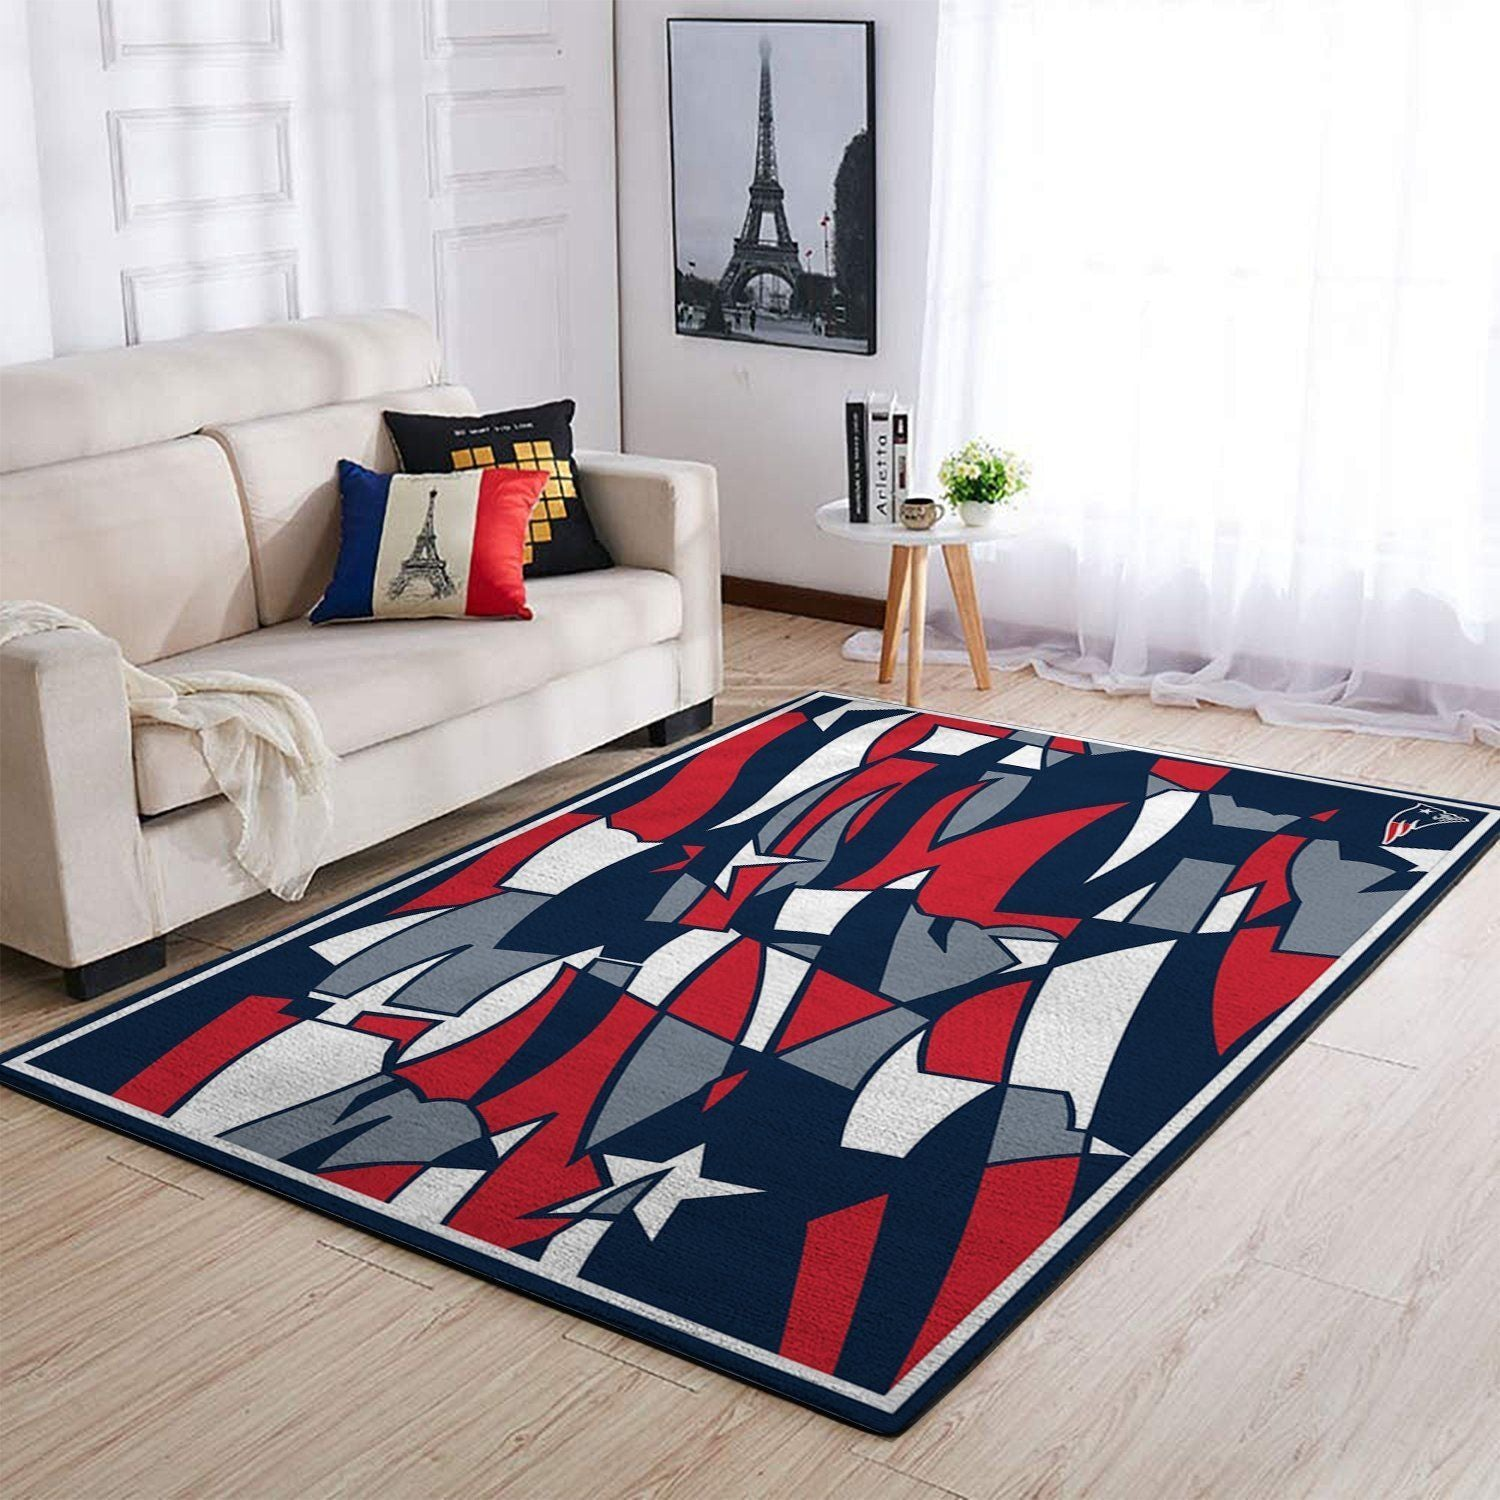 New England Patriots Area Rug NFL Football Floor Decor 1910074